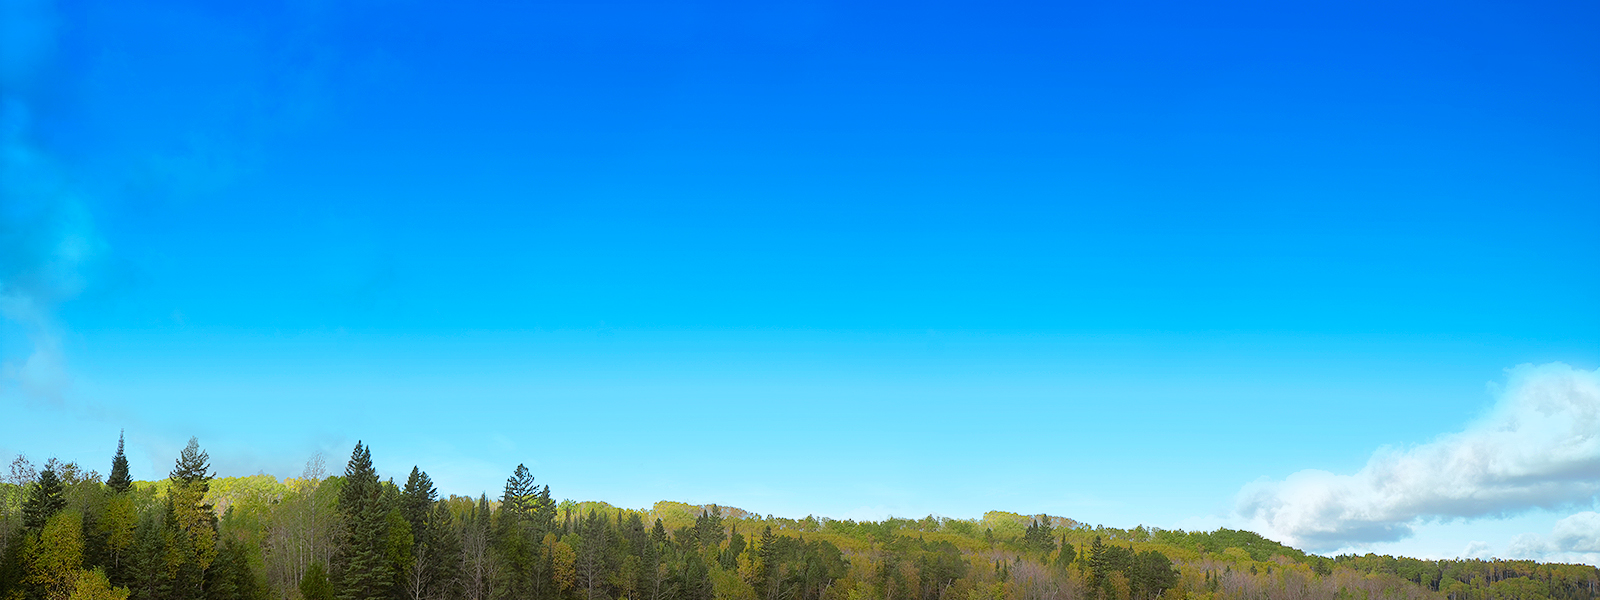 This image is of a generic Canadian landscape showing a treeline and blue sky.